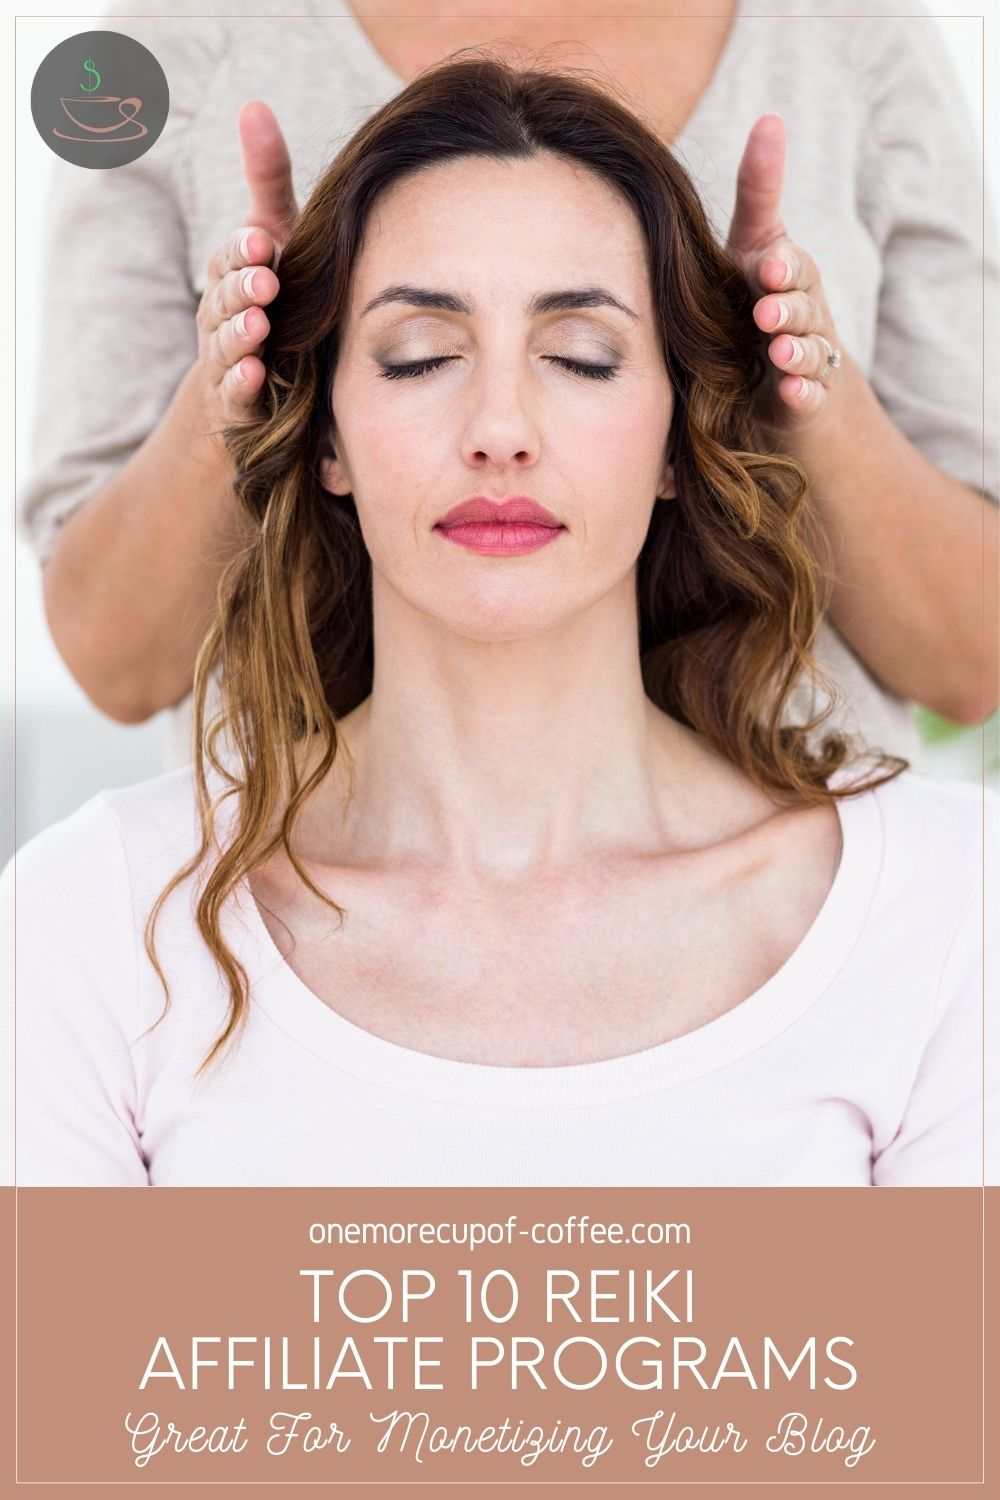 """woman in white top, eyes closed, another woman behind her holding two hands beside her face; with text overlay in brown banner """"Top 10 Reiki Affiliate Programs Great For Monetizing Your Blog"""""""